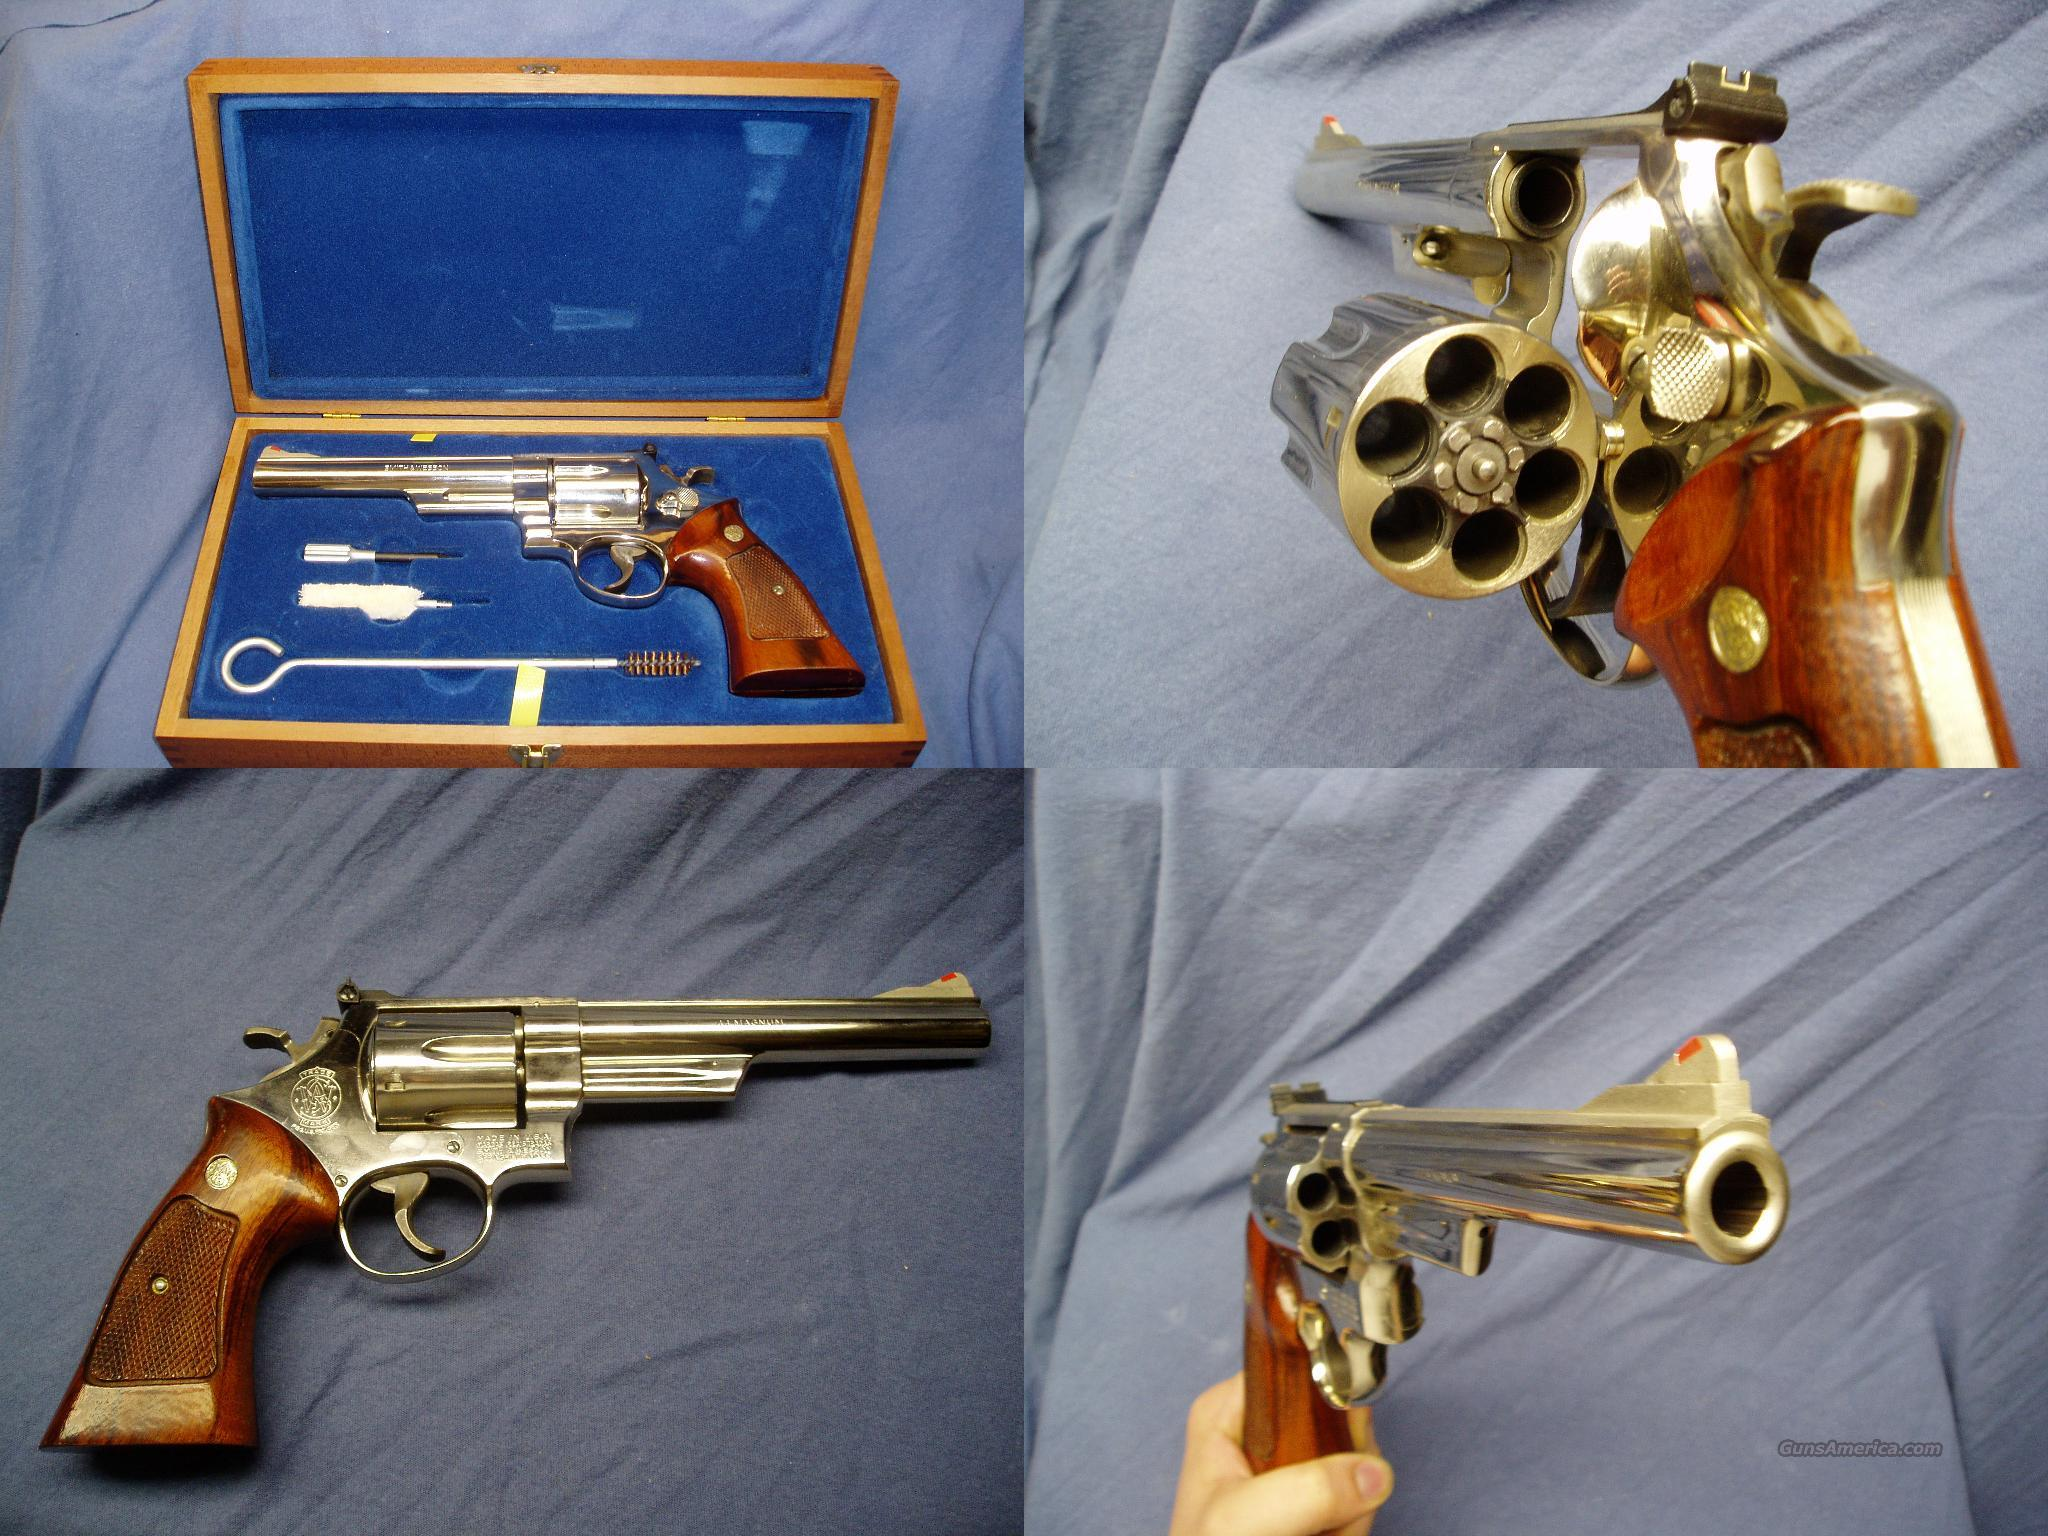 Smith & Wesson Model 29-2 Nickel Plated 44 Magnum  Guns > Pistols > Smith & Wesson Revolvers > Full Frame Revolver